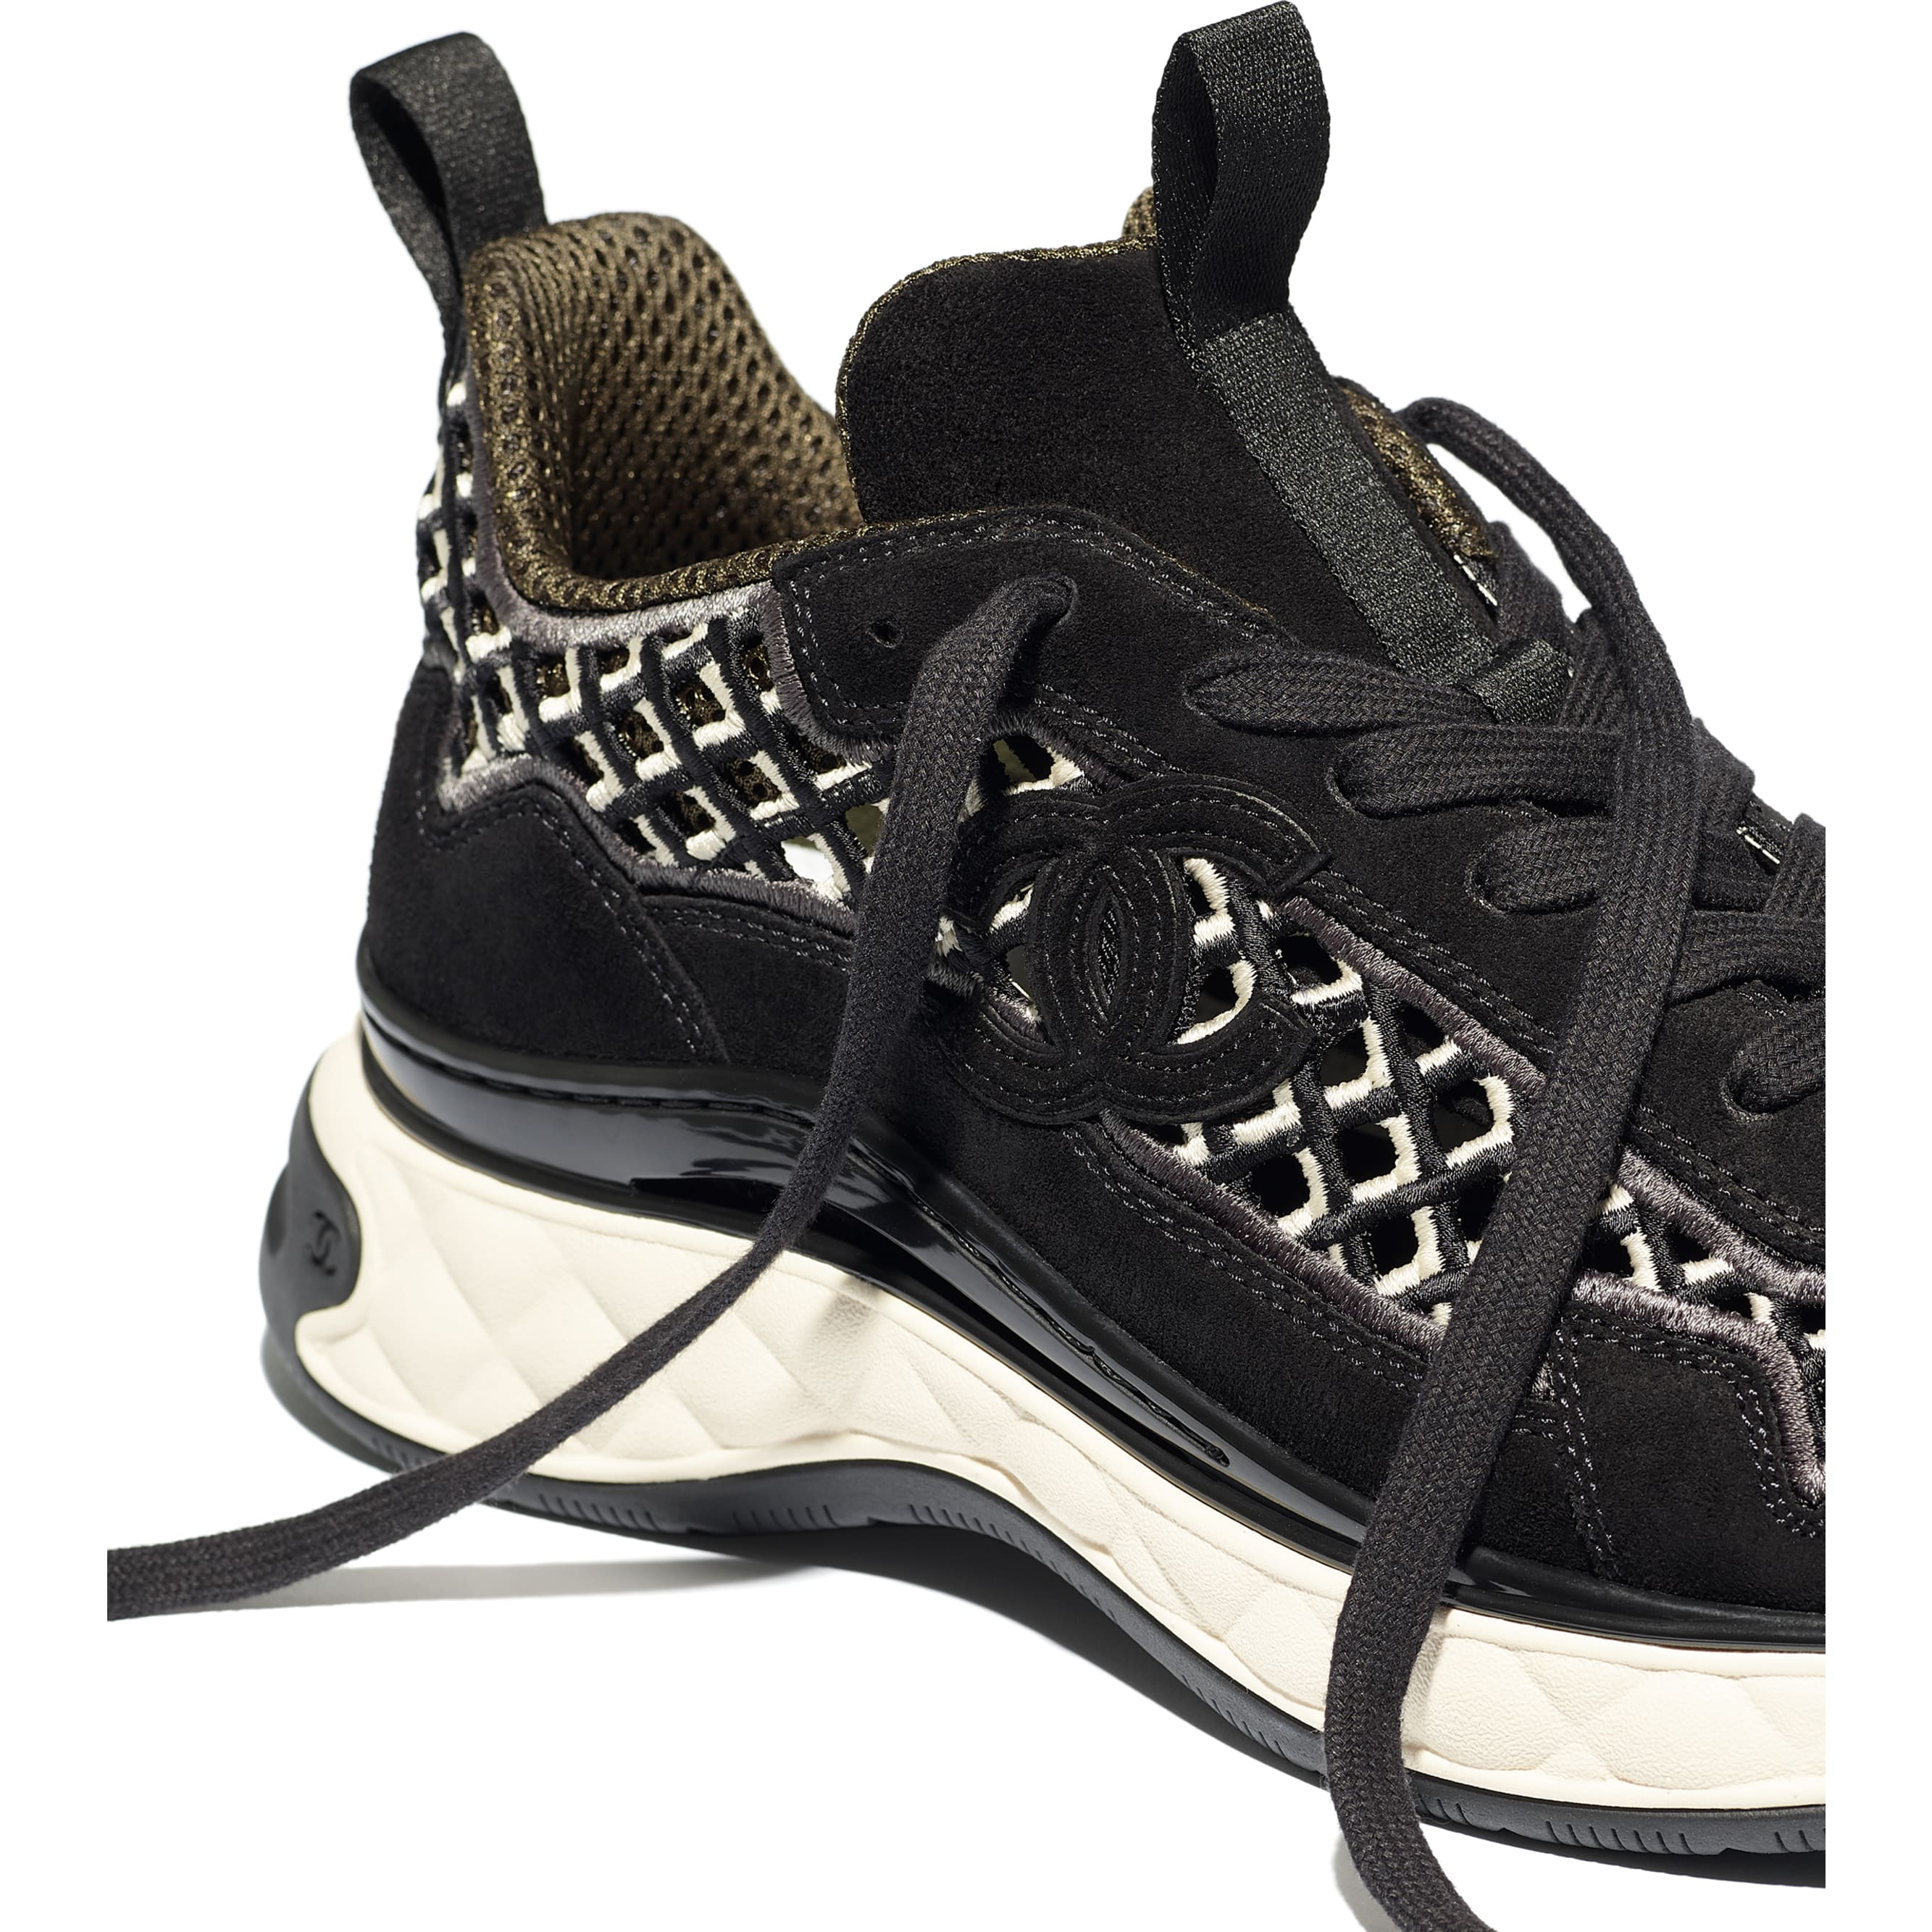 Sneakers - Black - Suede Calfskin & Embroidery - CHANEL - Extra view - see standard sized version